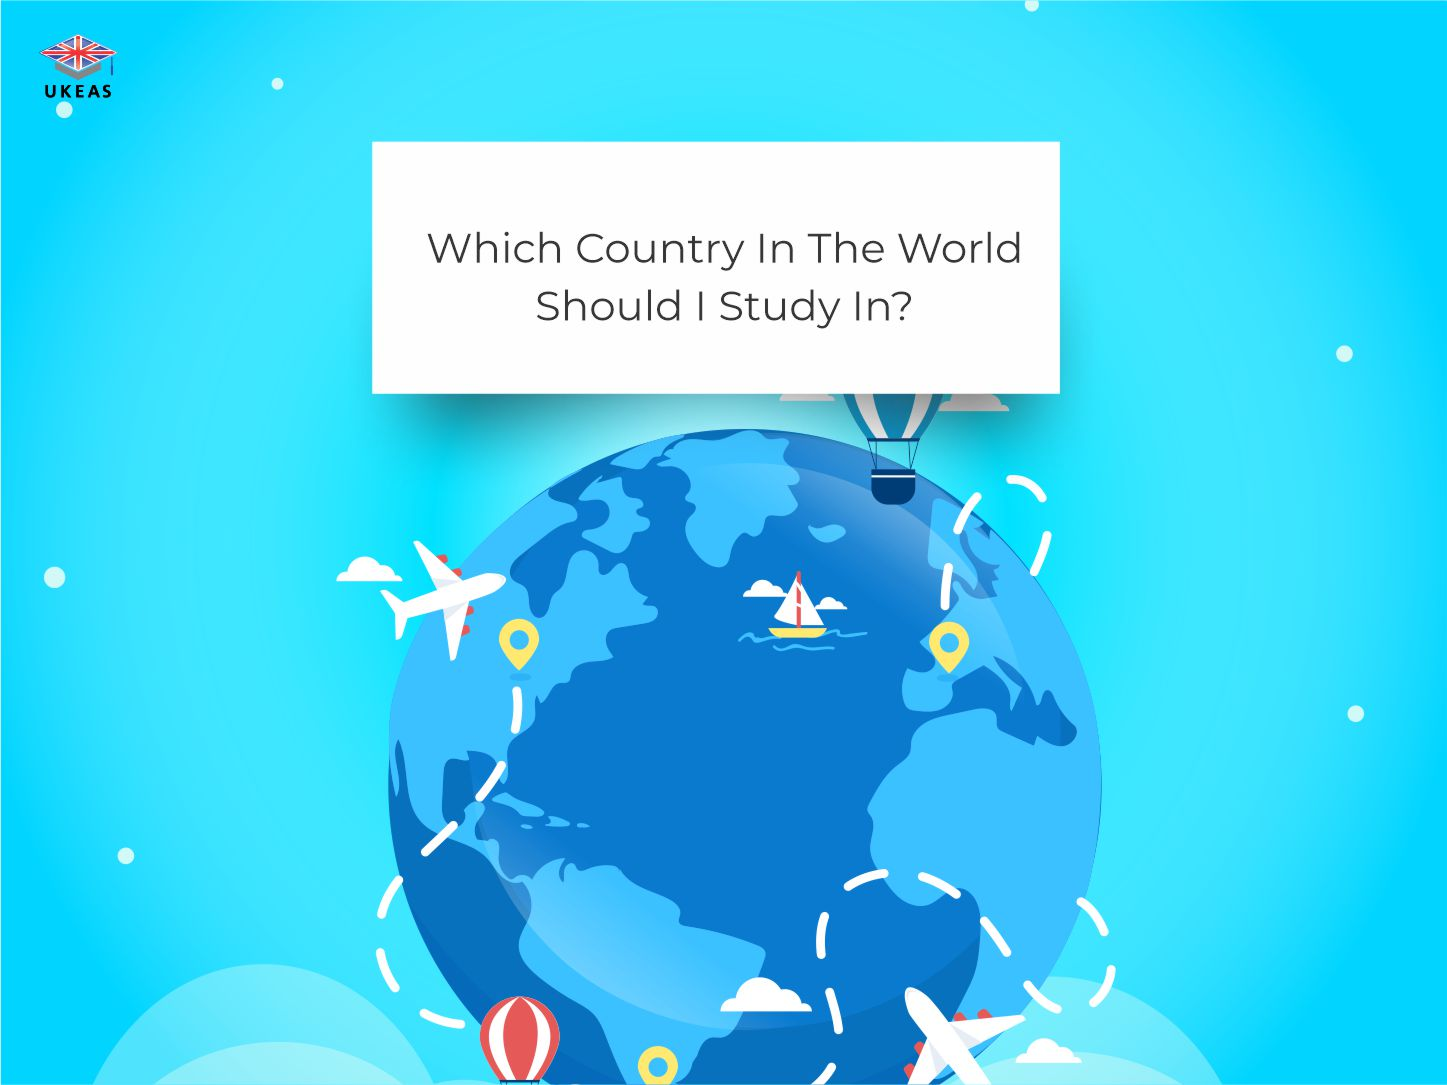 Which Country In The World Should I Study In?